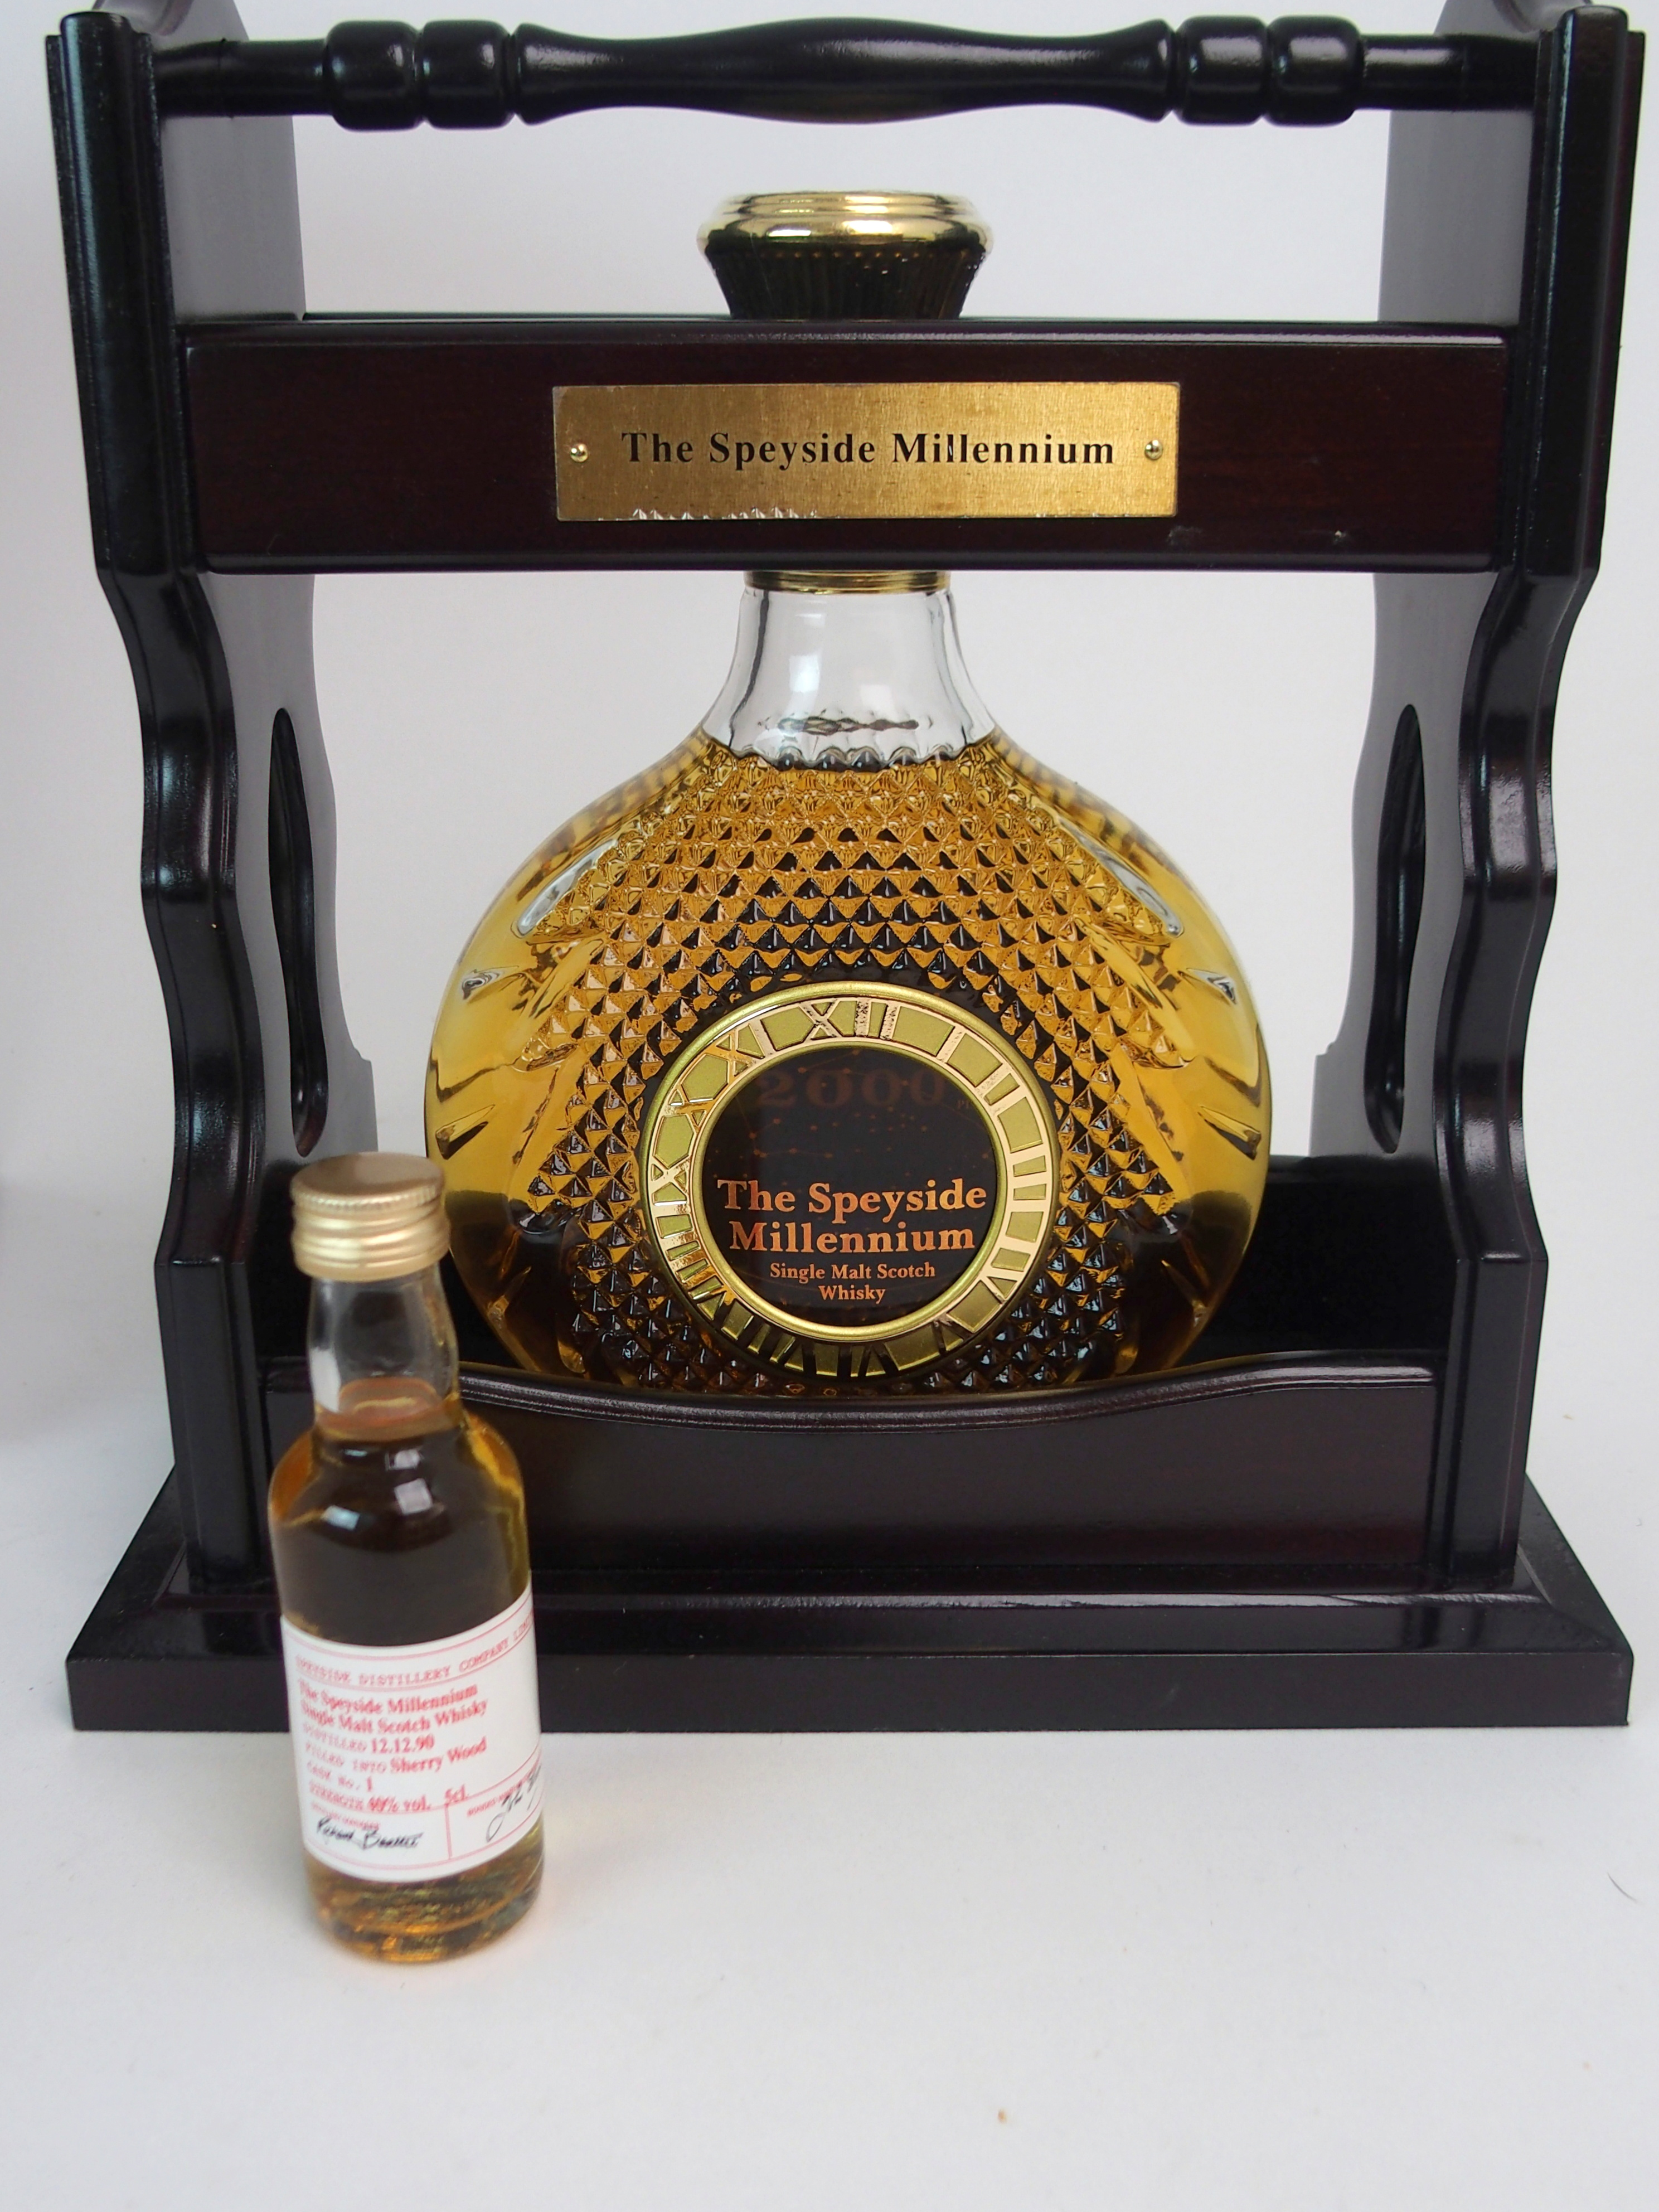 THE SPEYSIDE MILLENIUM SINGLE MALT WHISKY in Tantalus stand, with case, No. 308 with - Image 4 of 5